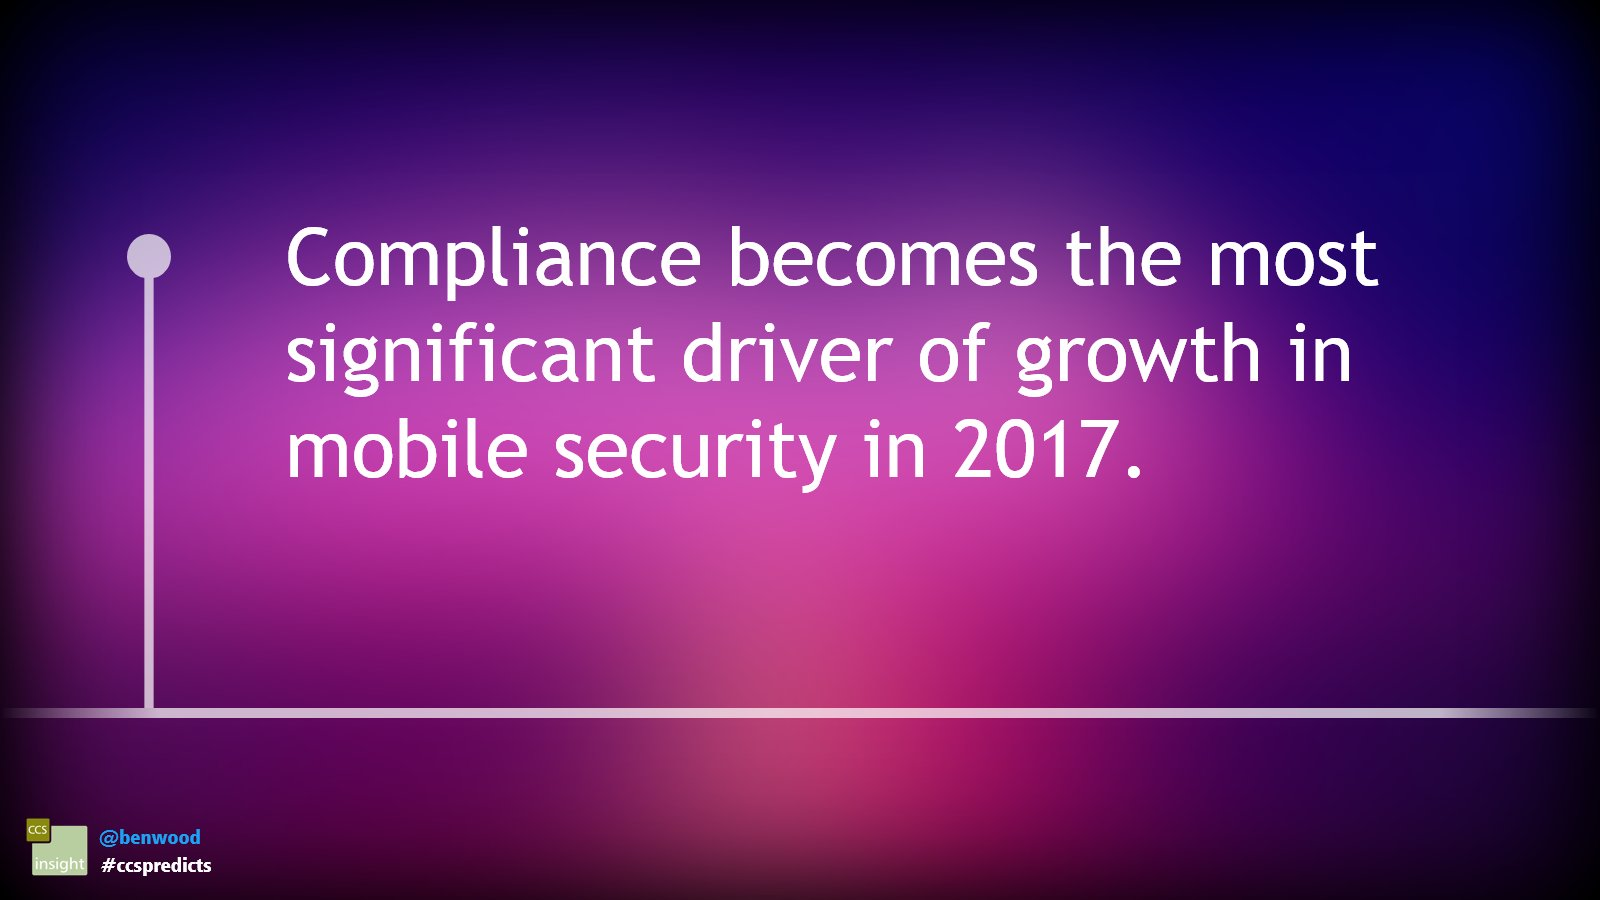 Compliance becomes the most significant driver of growth in mobile security in 2017 #ccspredicts https://t.co/Zl7V1C4qh2